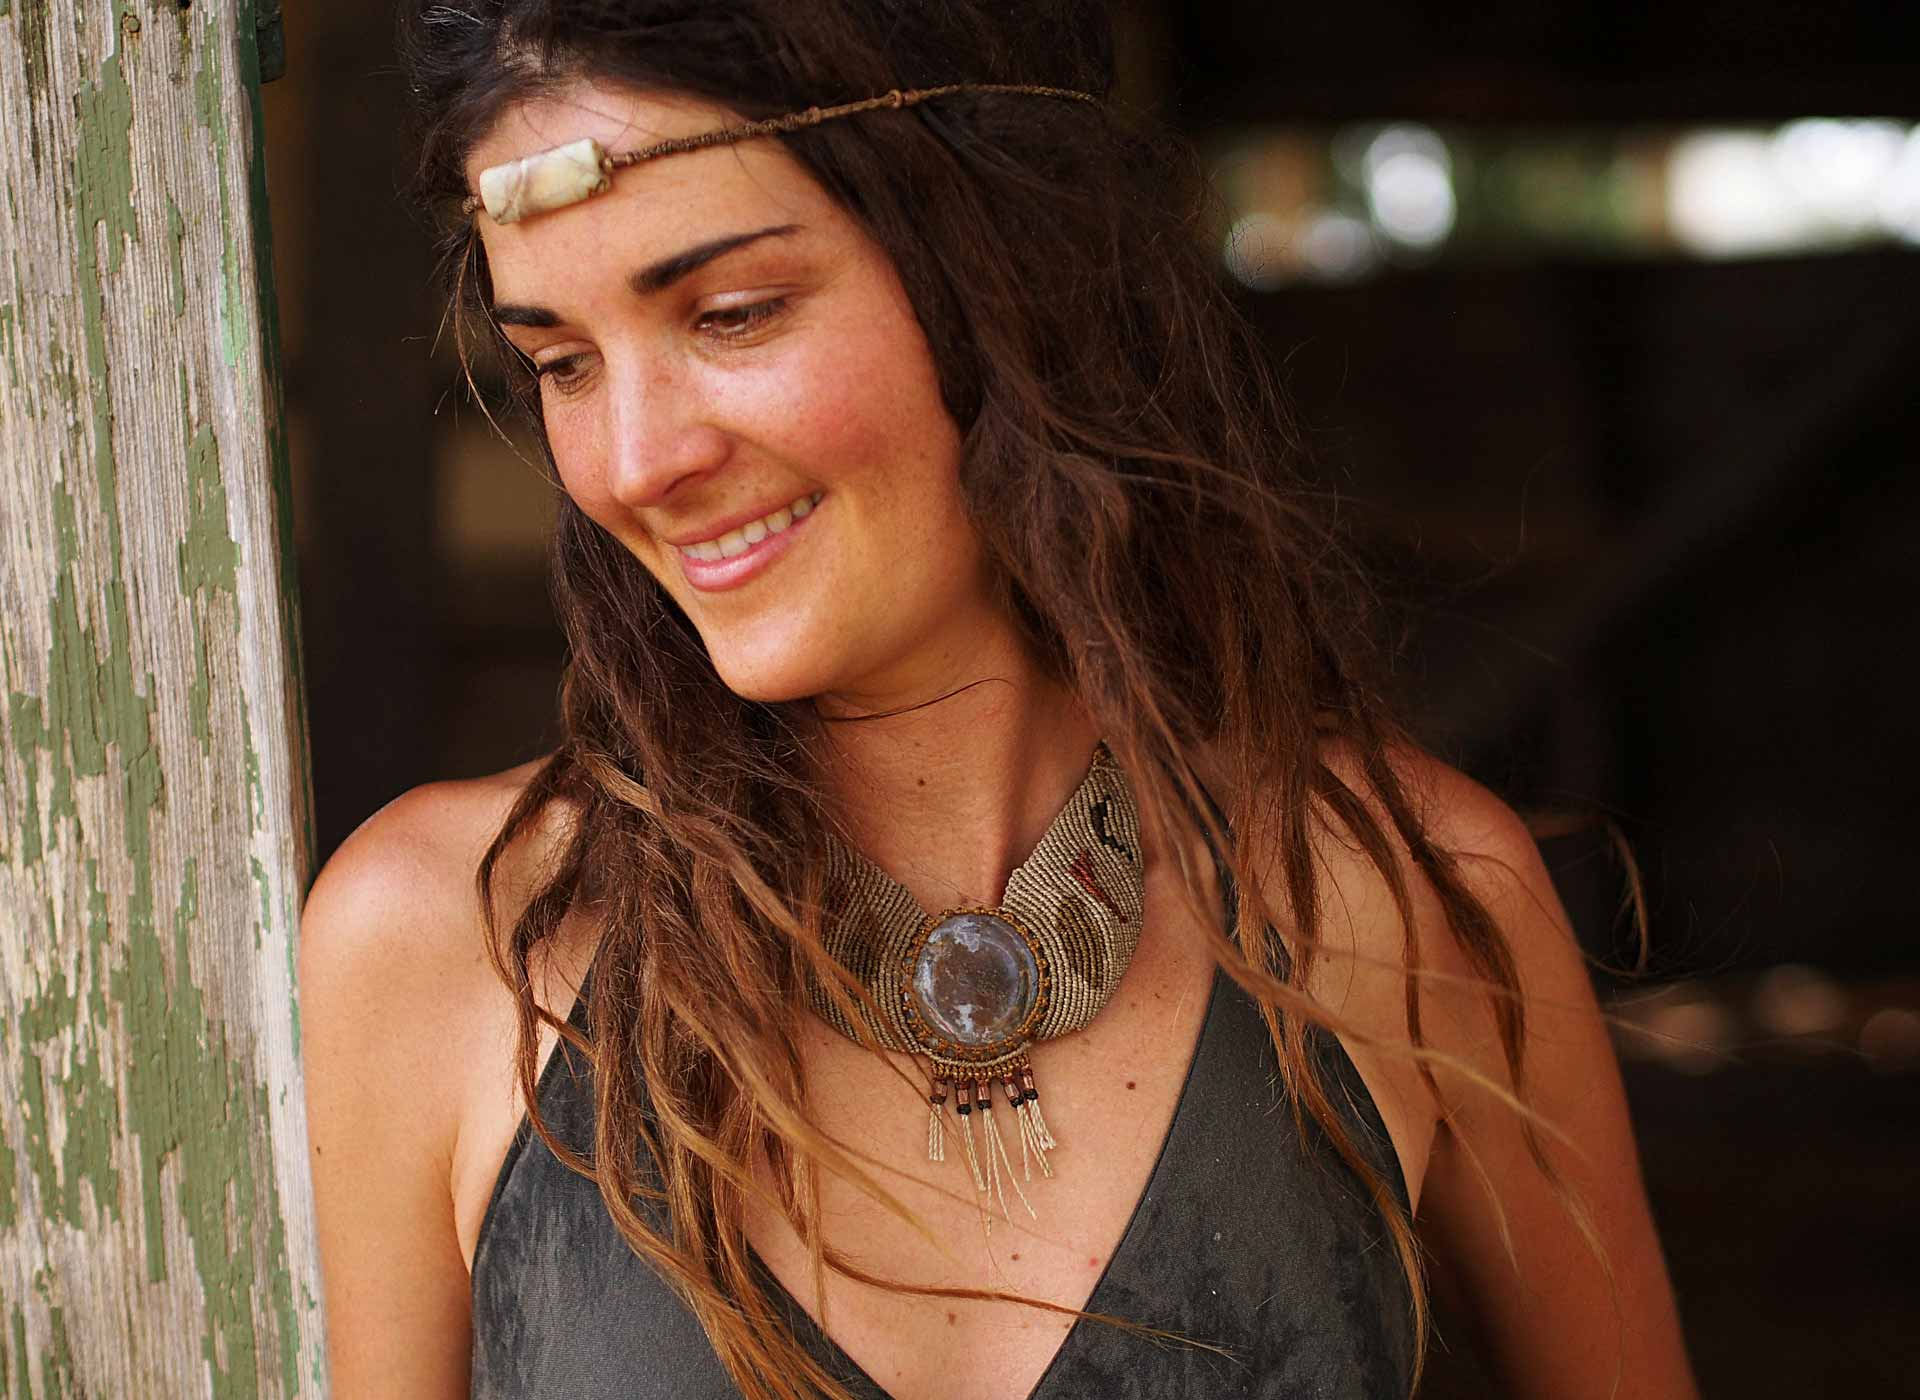 The Ai & The Fly Moon Phases Necklace and Anazonite Headpiece